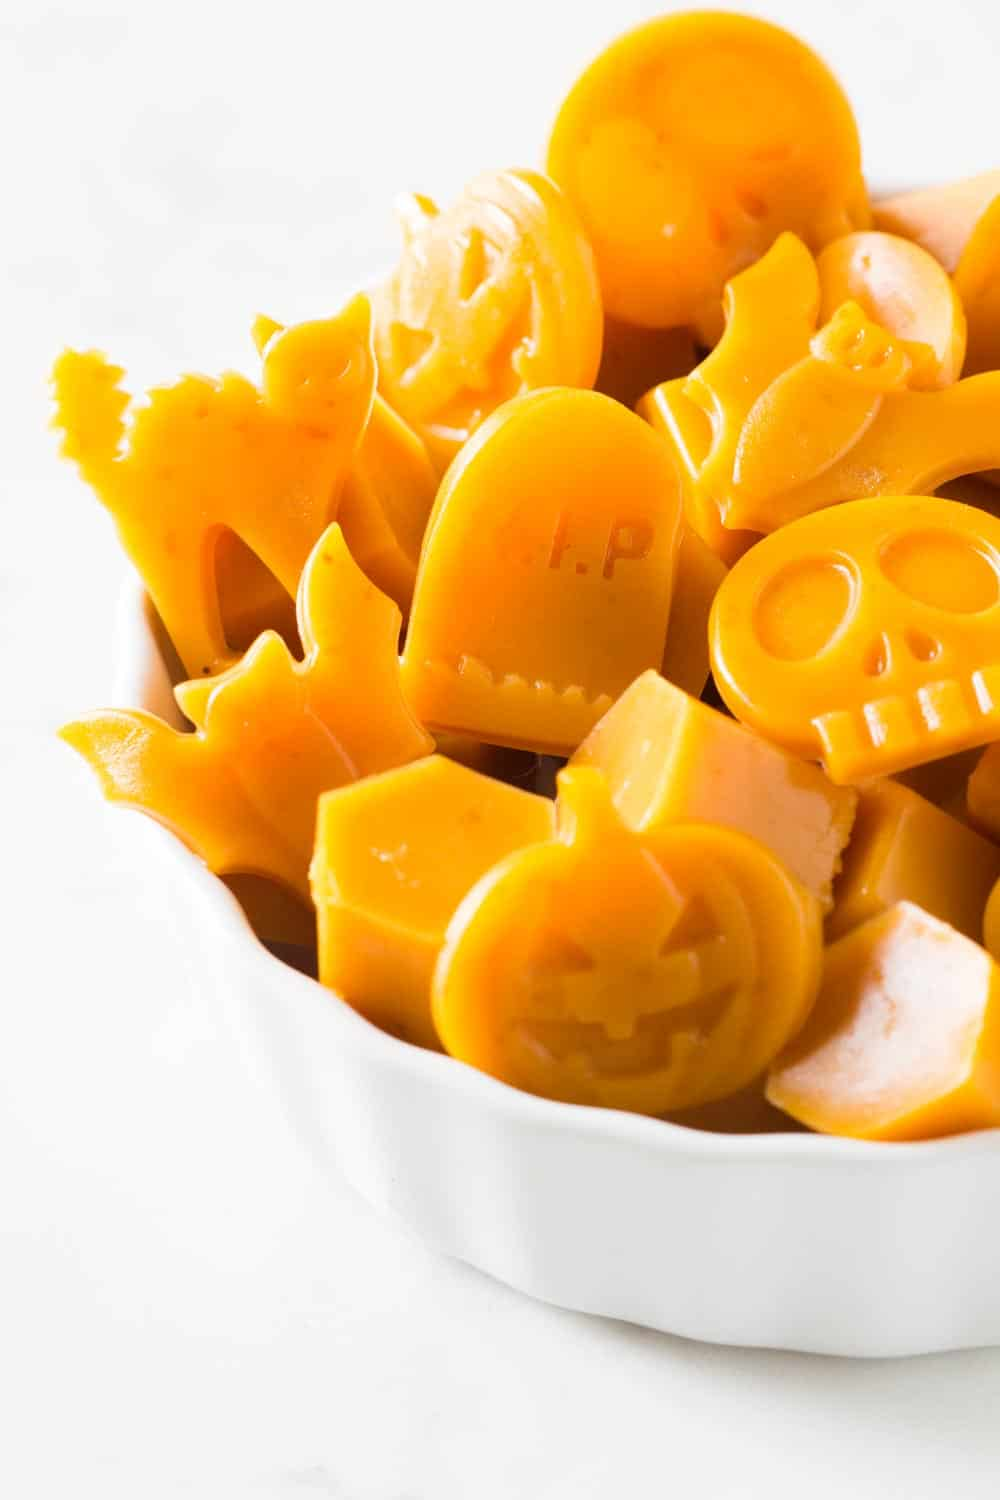 Healthy Halloween Treats gummies presented in a white bowl